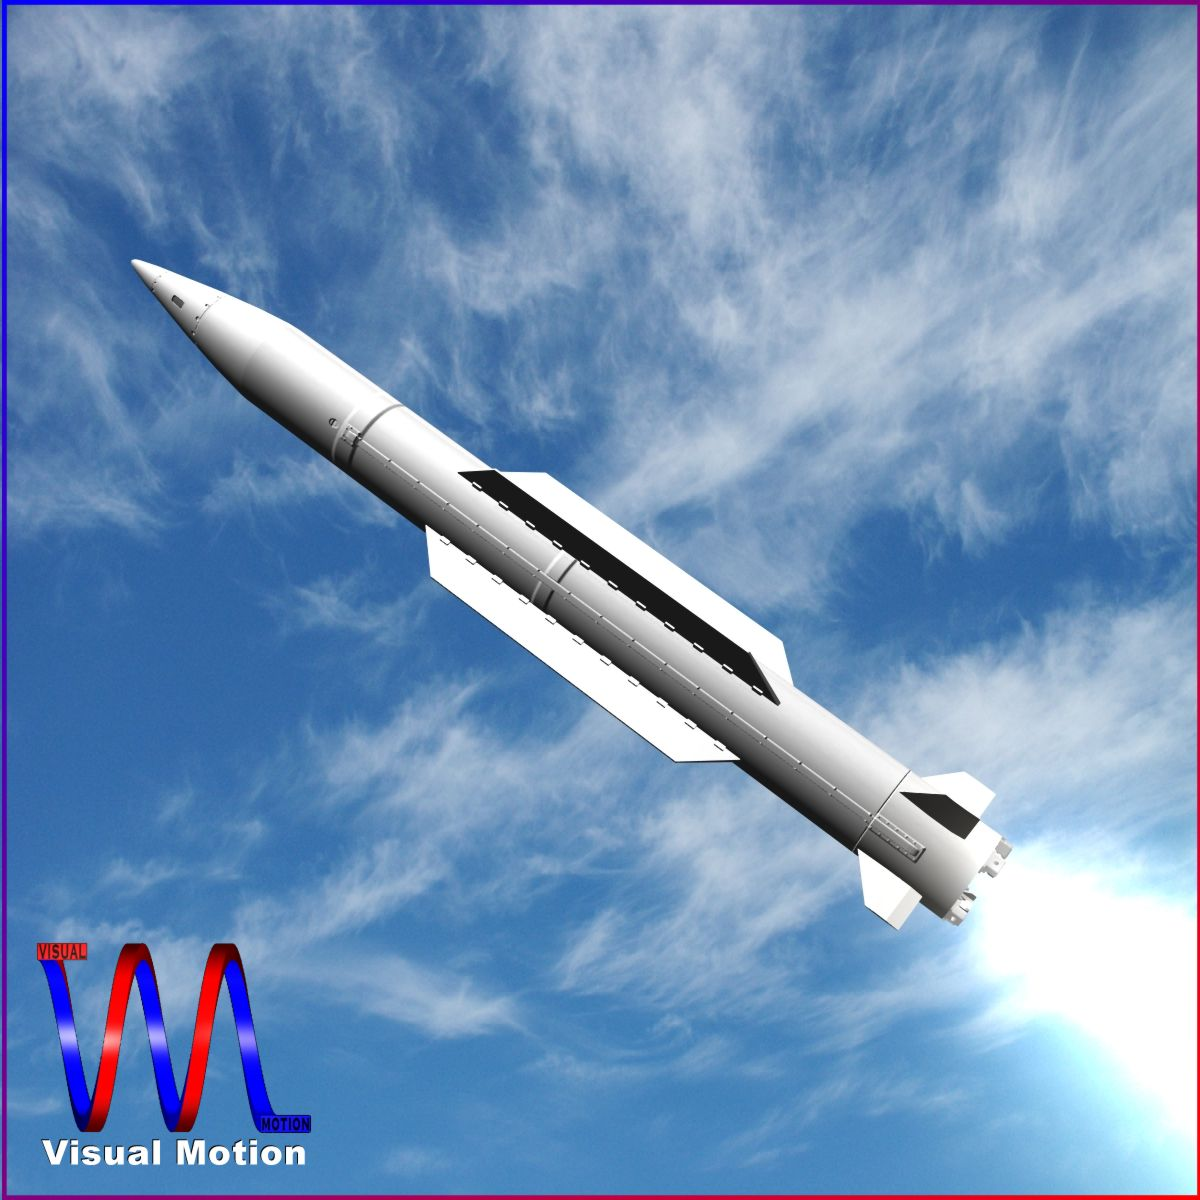 chinese sy-400 missile 3d model 3ds dxf cob x obj 157958